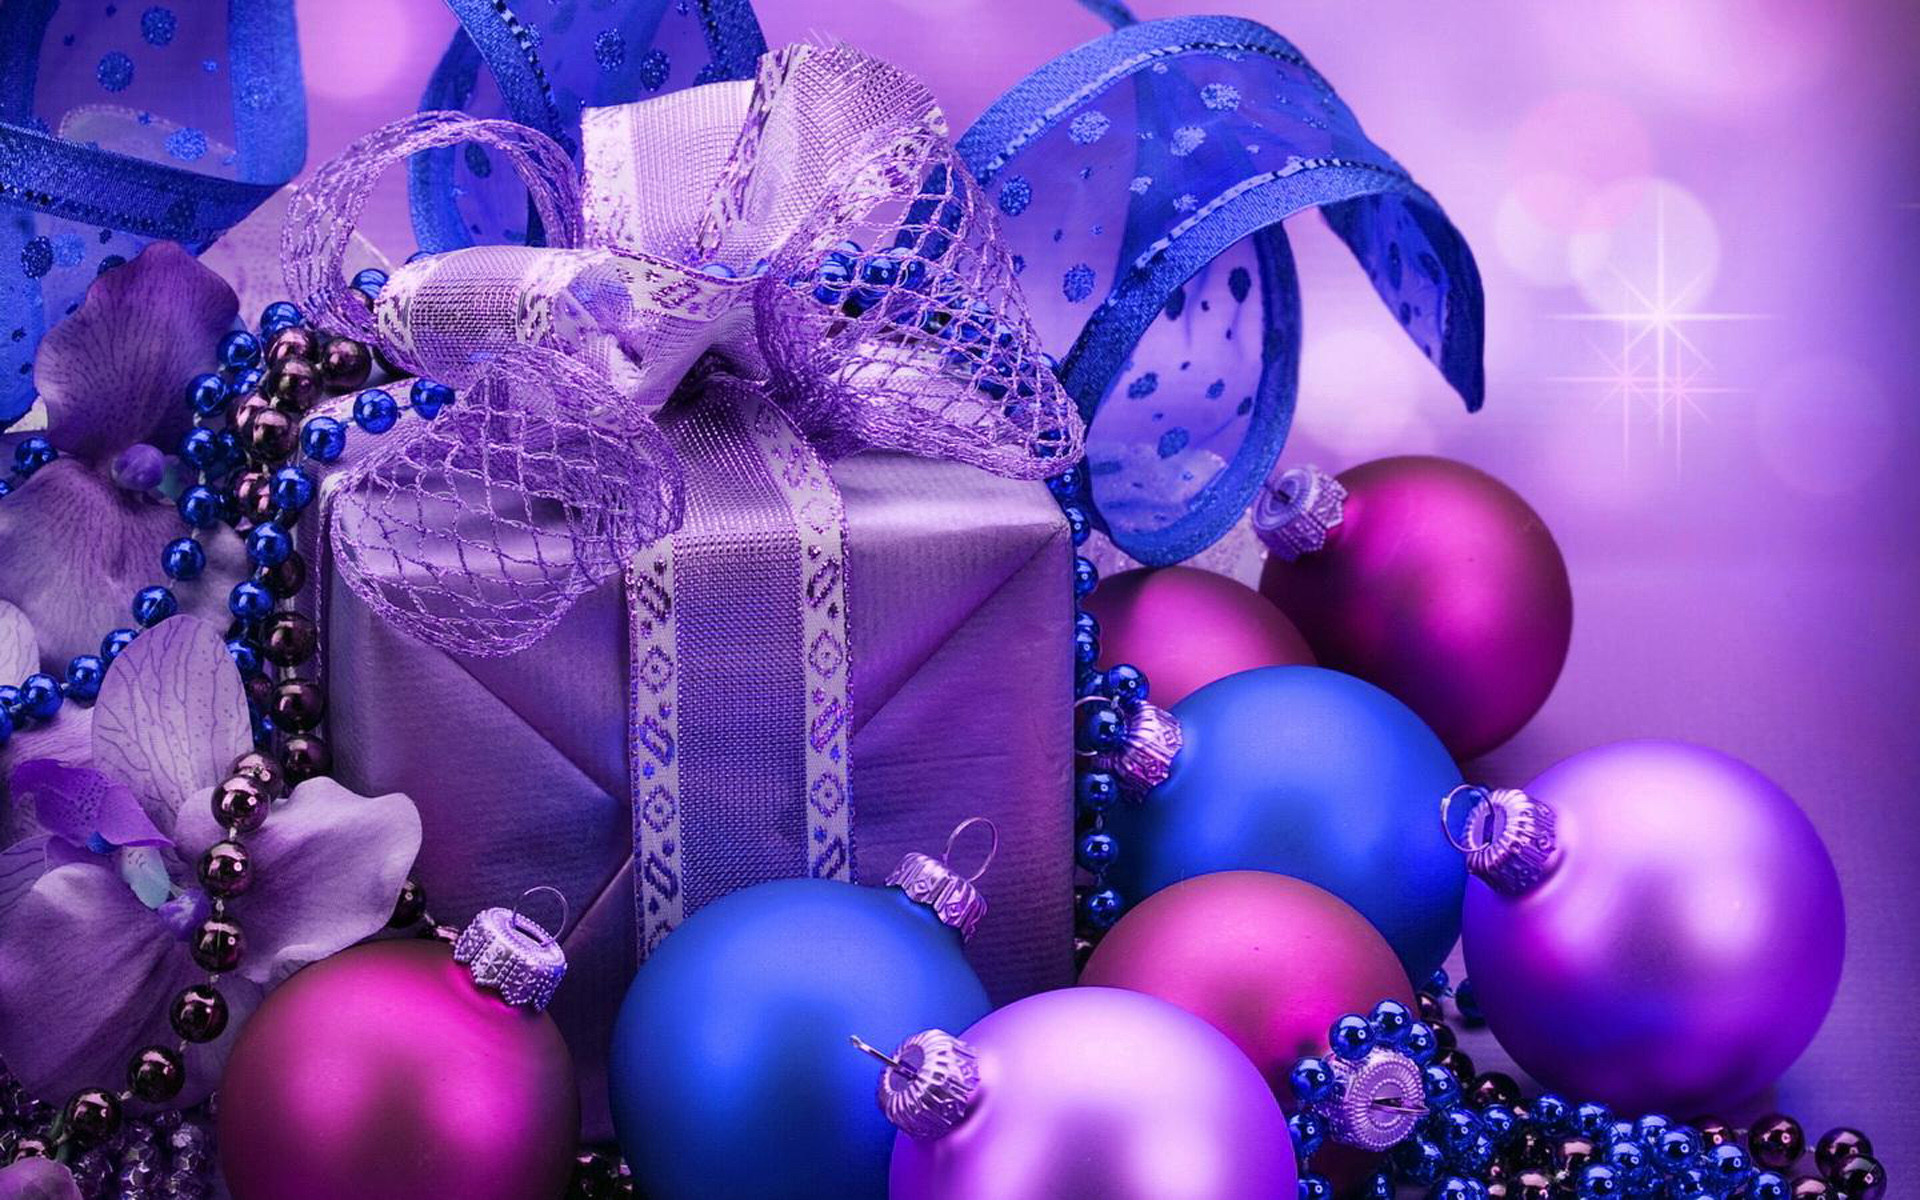 … christmas hd wallpapers pictures images …